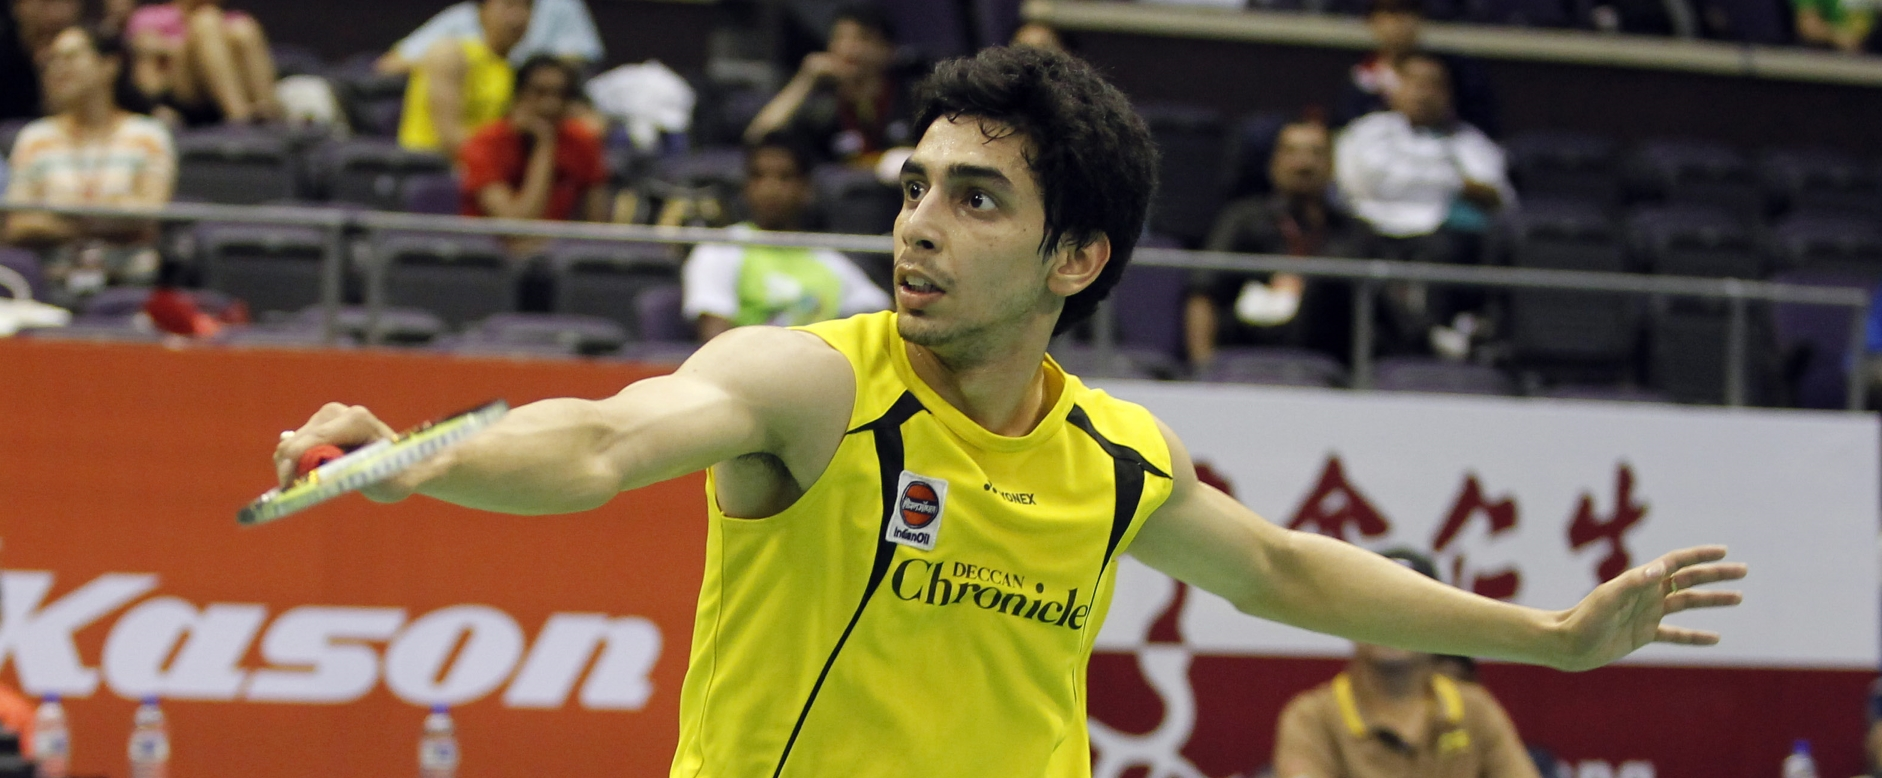 Thaihot China Open 2014 – Day 1: Gurusaidutt Scrambles Into Main Draw